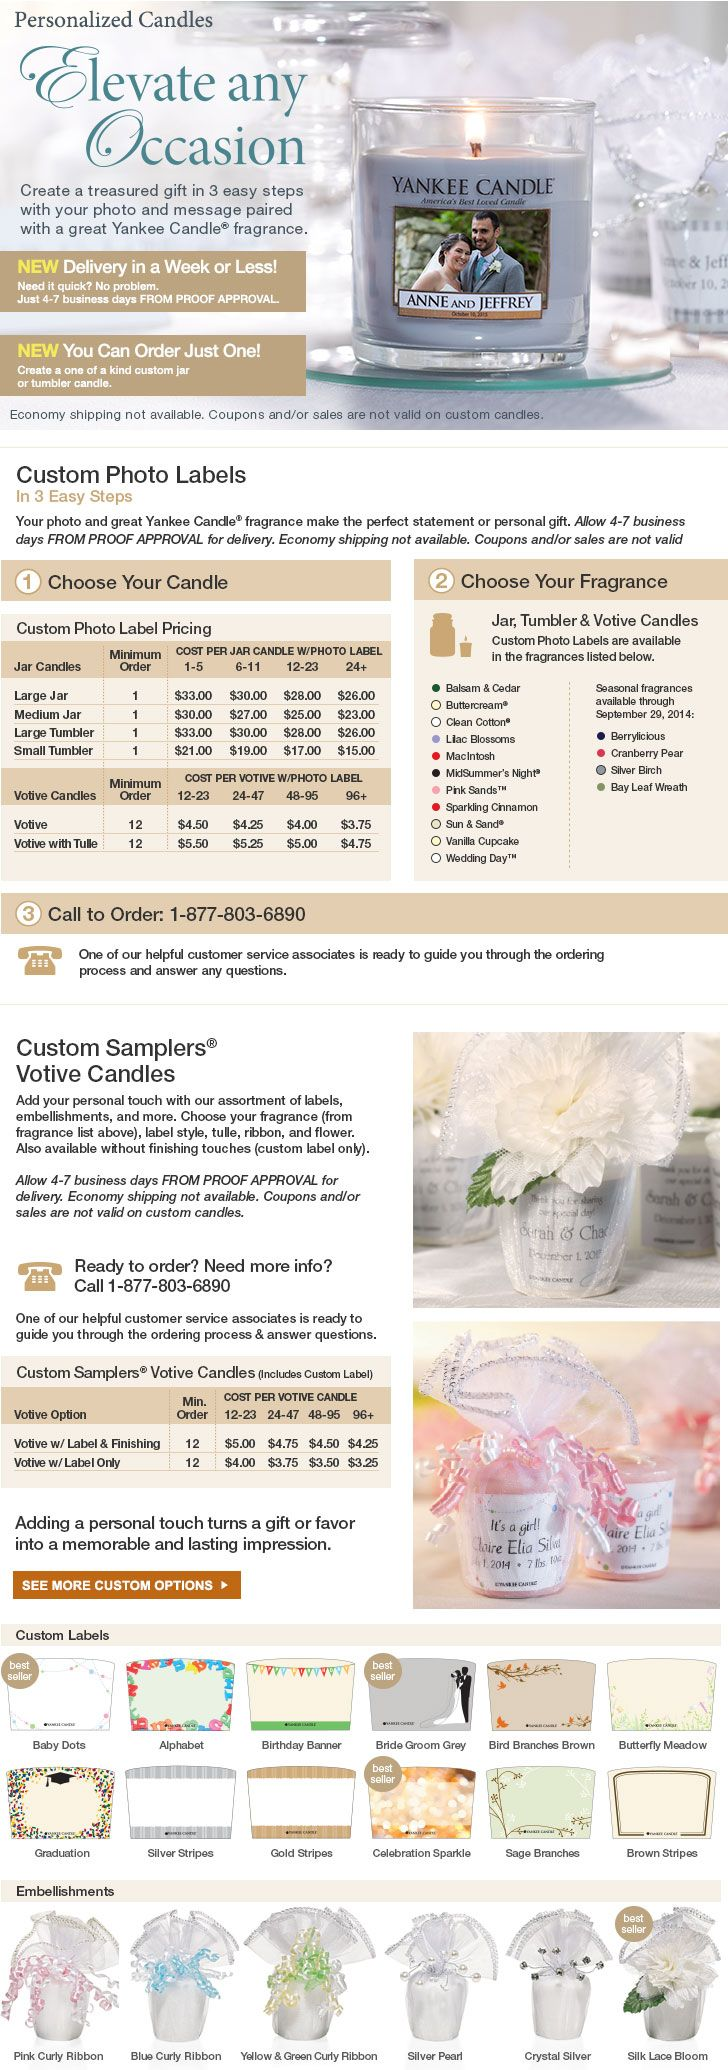 Customized Candles for weddings l Yankee Candle